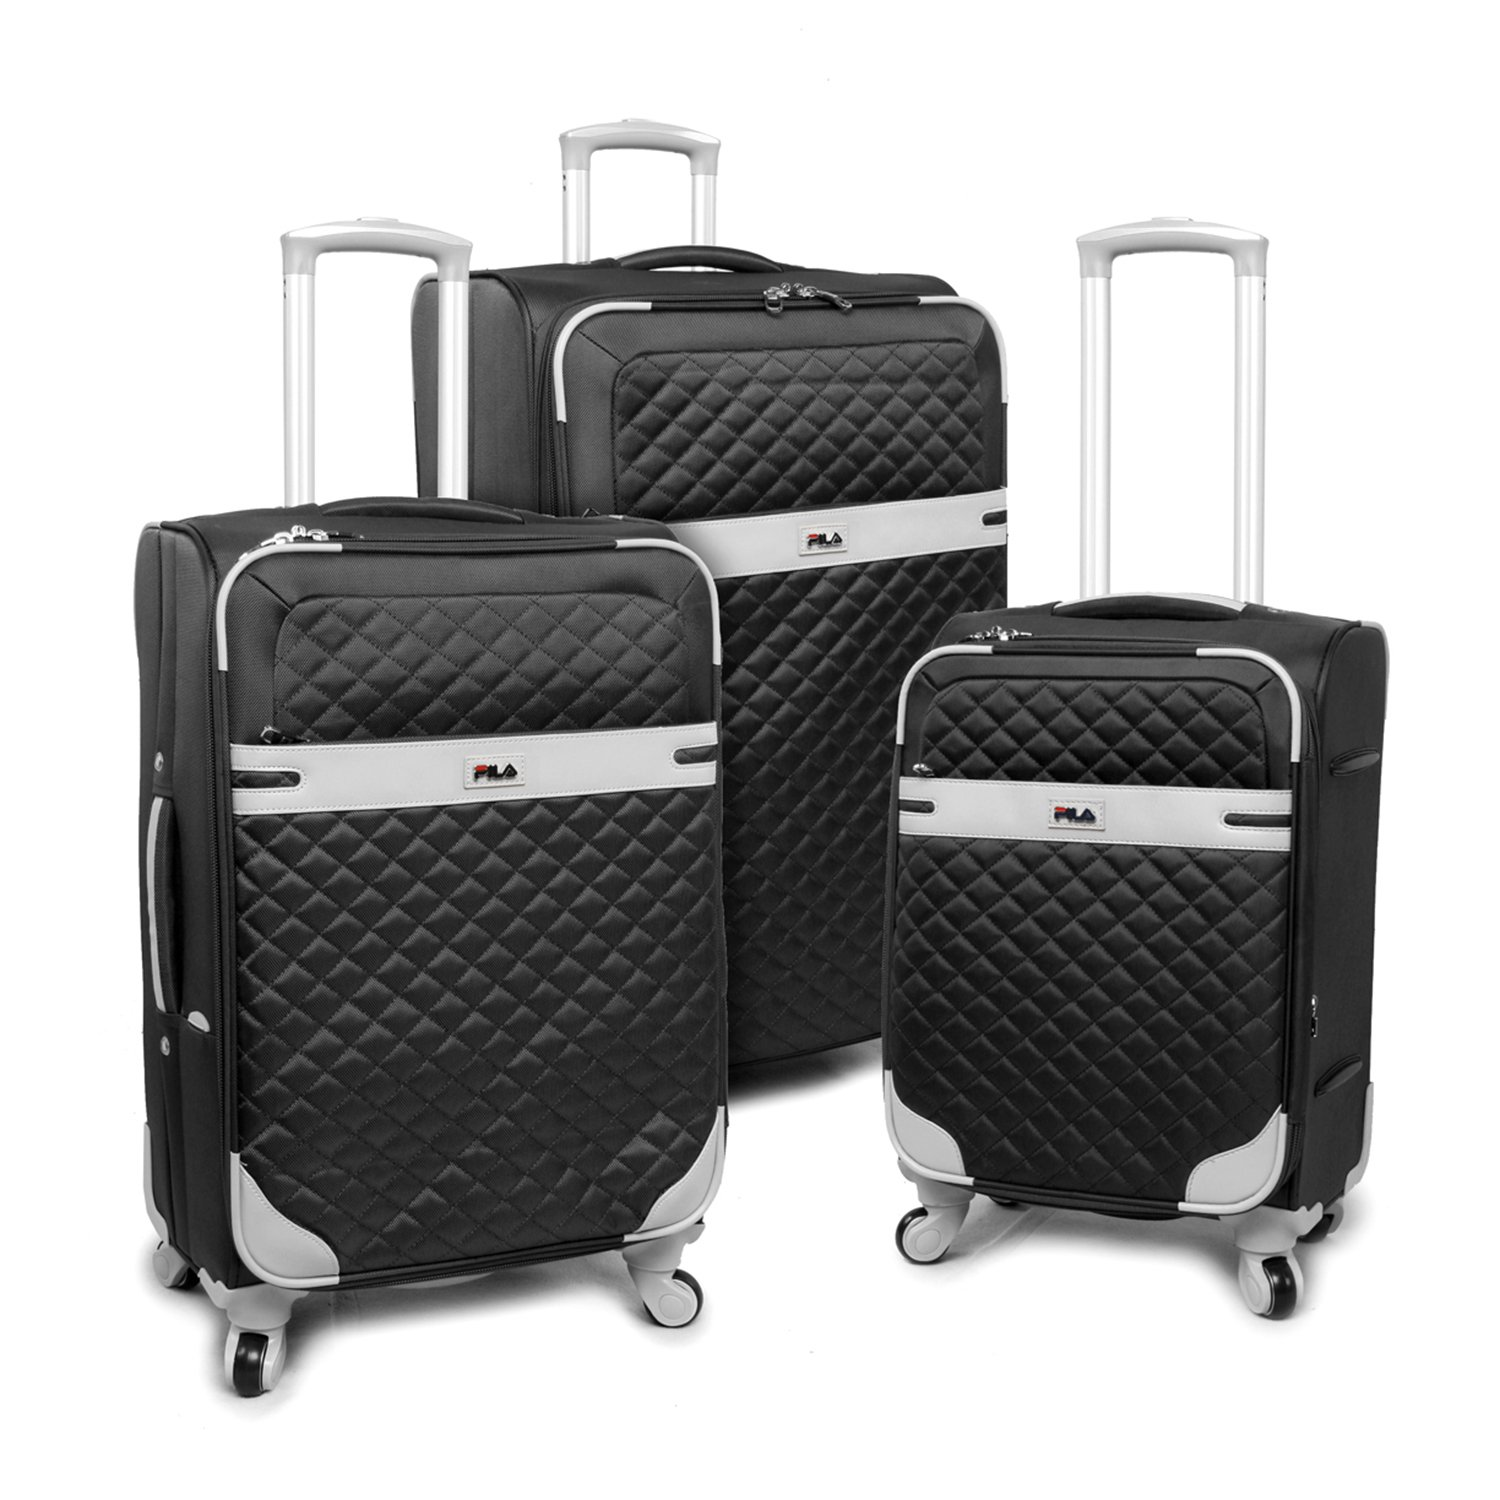 Luggage Gabriella 3 Piece Set Expandable Suitcase with Spinner Wheels